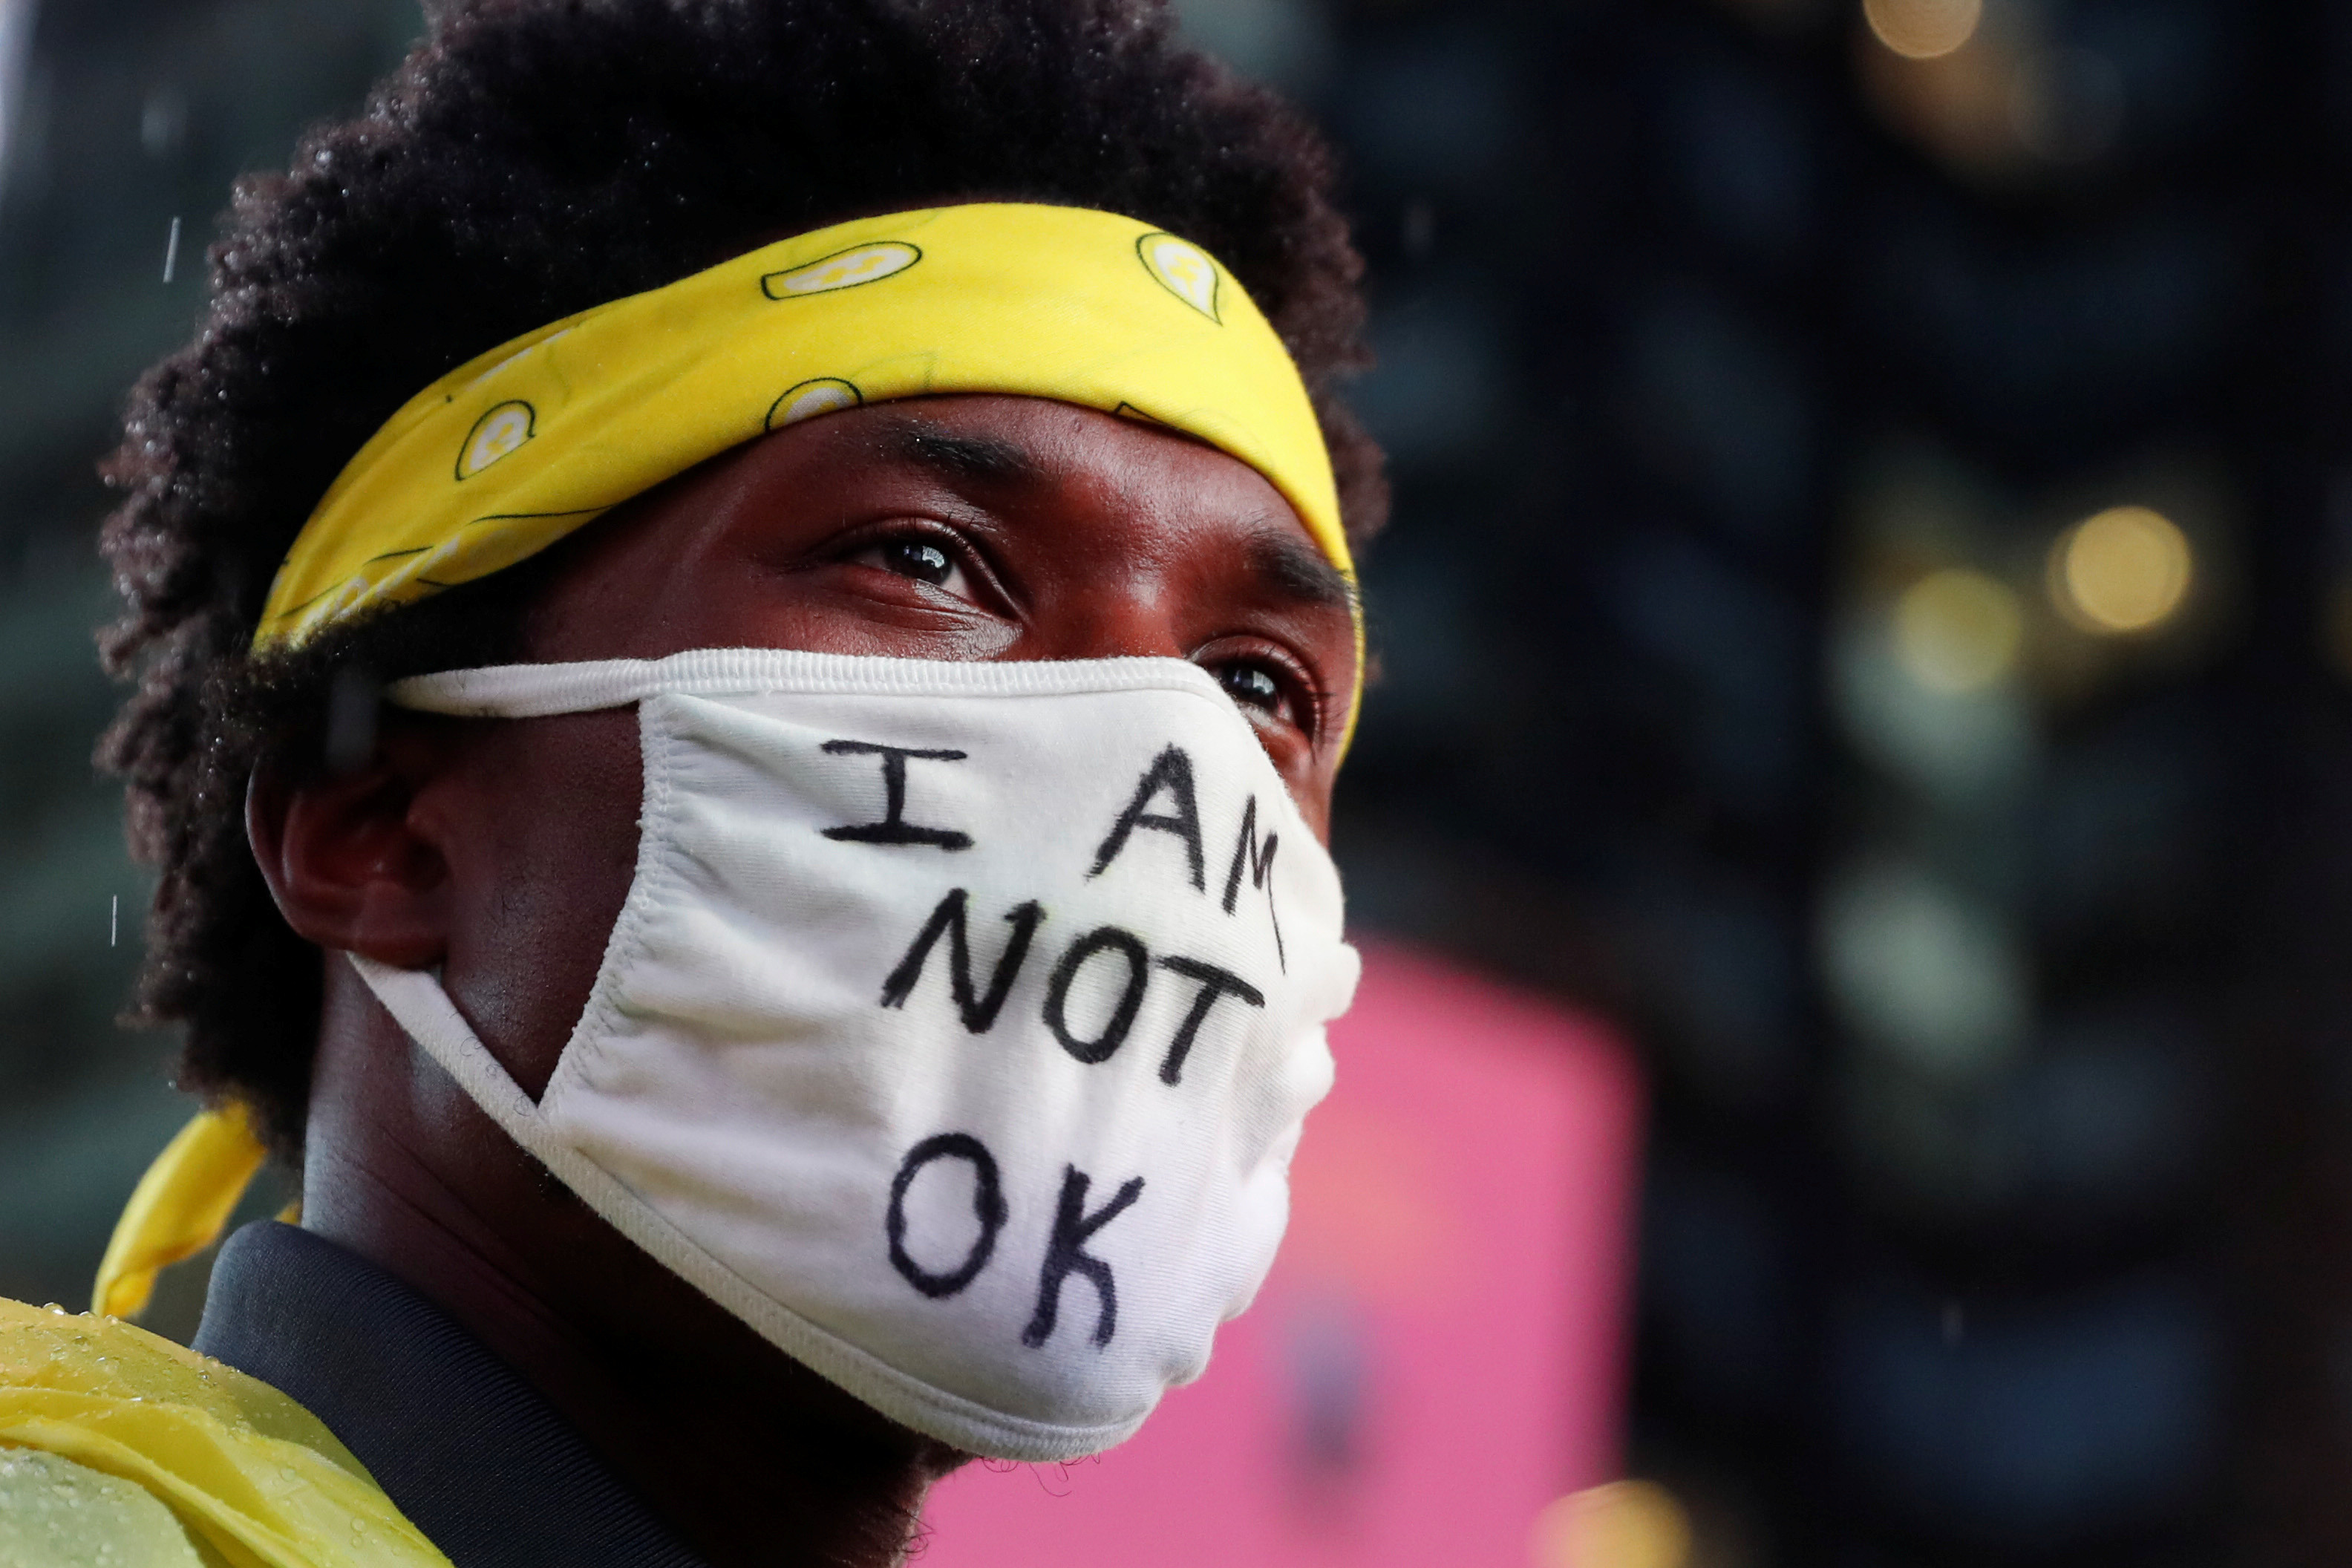 A demonstrator wearing a face mask takes part in a protest following the death of the Black man Daniel Prude, after police put a spit hood over his head during an arrest in Rochester on March 23, at Times Square in New York, U.S. September 3, 2020. REUTERS/Shannon Stapleton - RC2DRI97HLO8